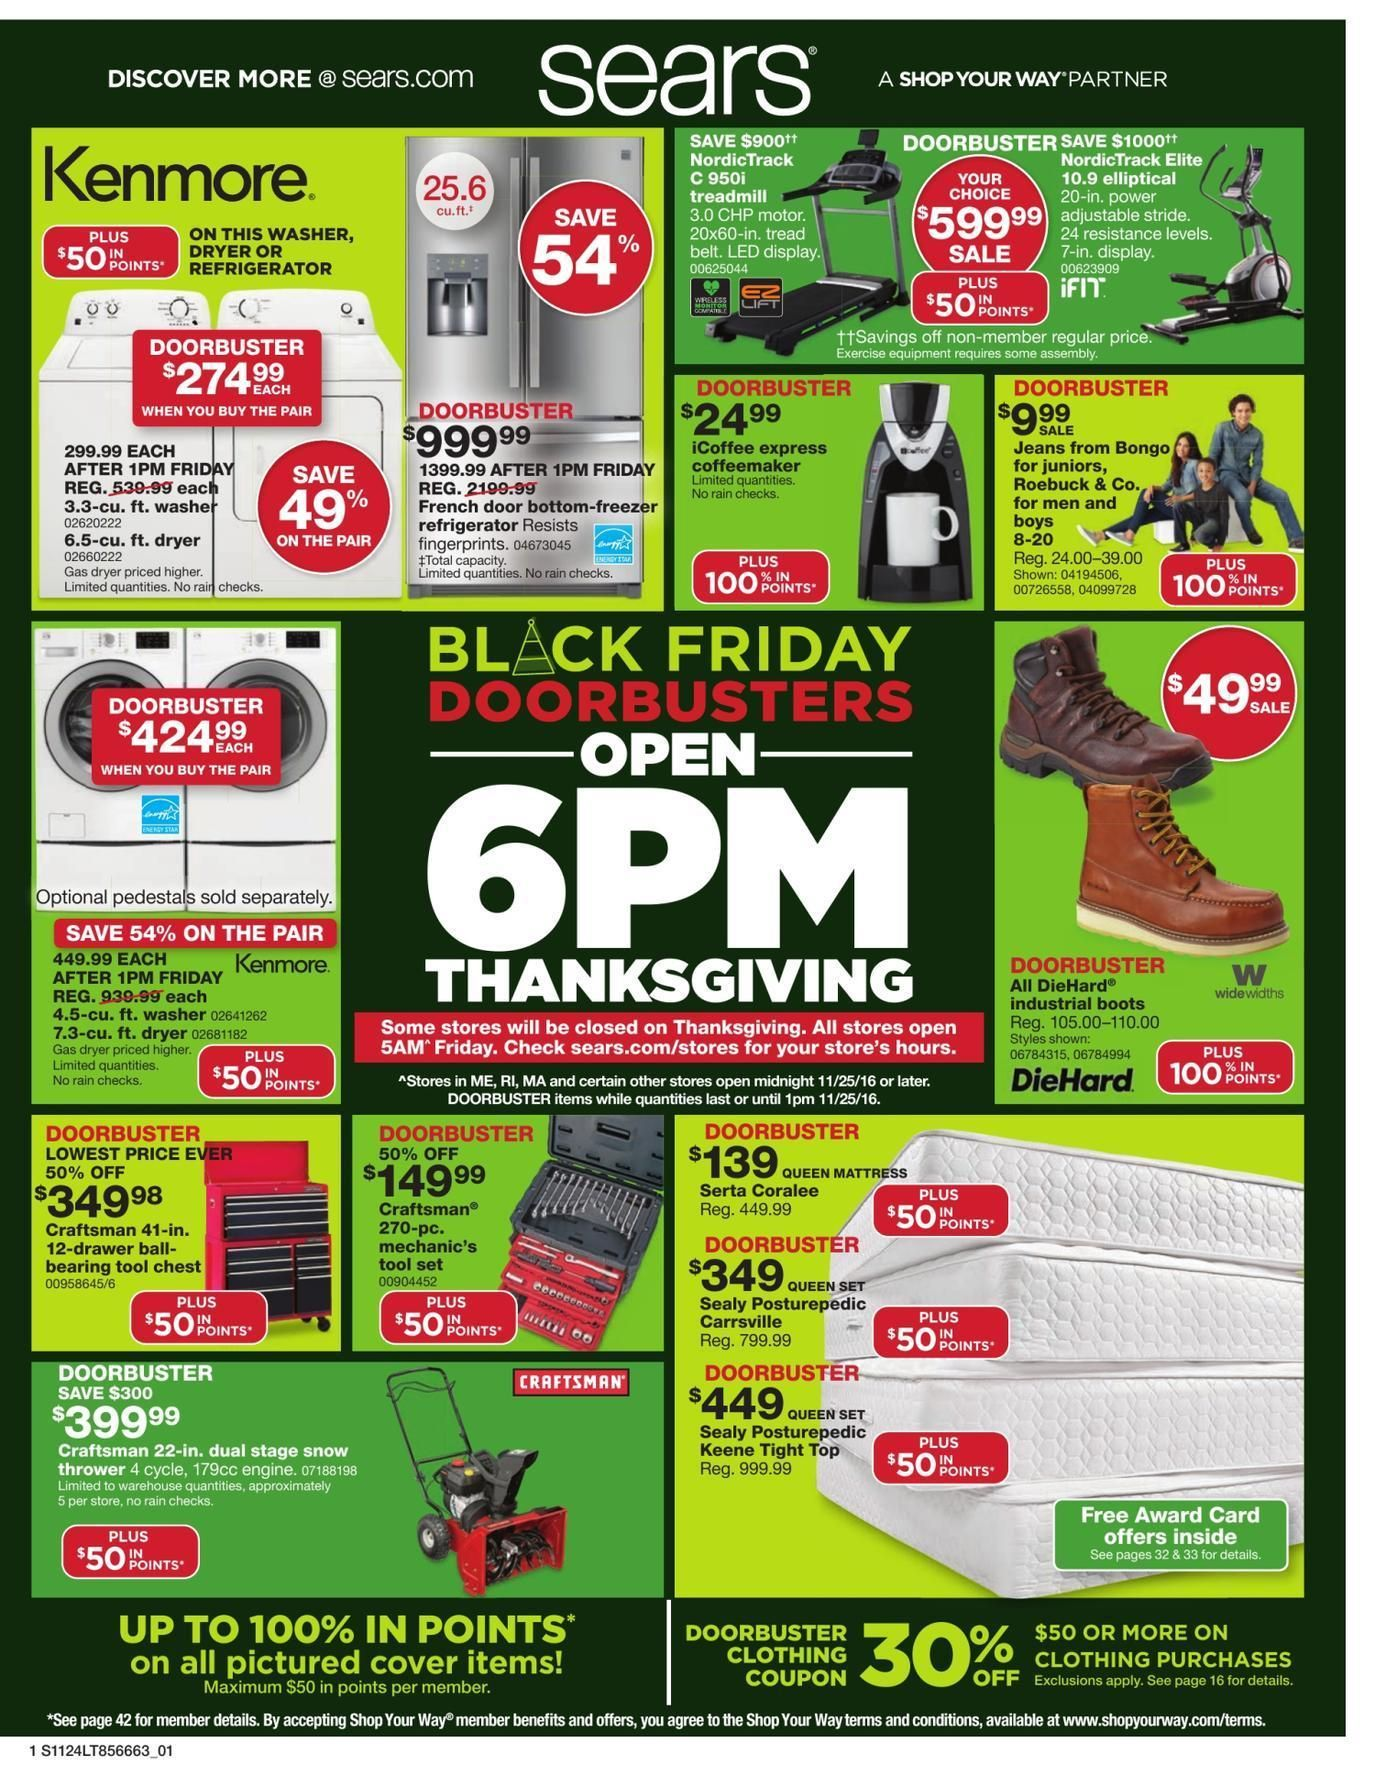 Sears 2019 Black Friday Ad In 2020 Black Friday Ads Black Friday Black Friday Sale